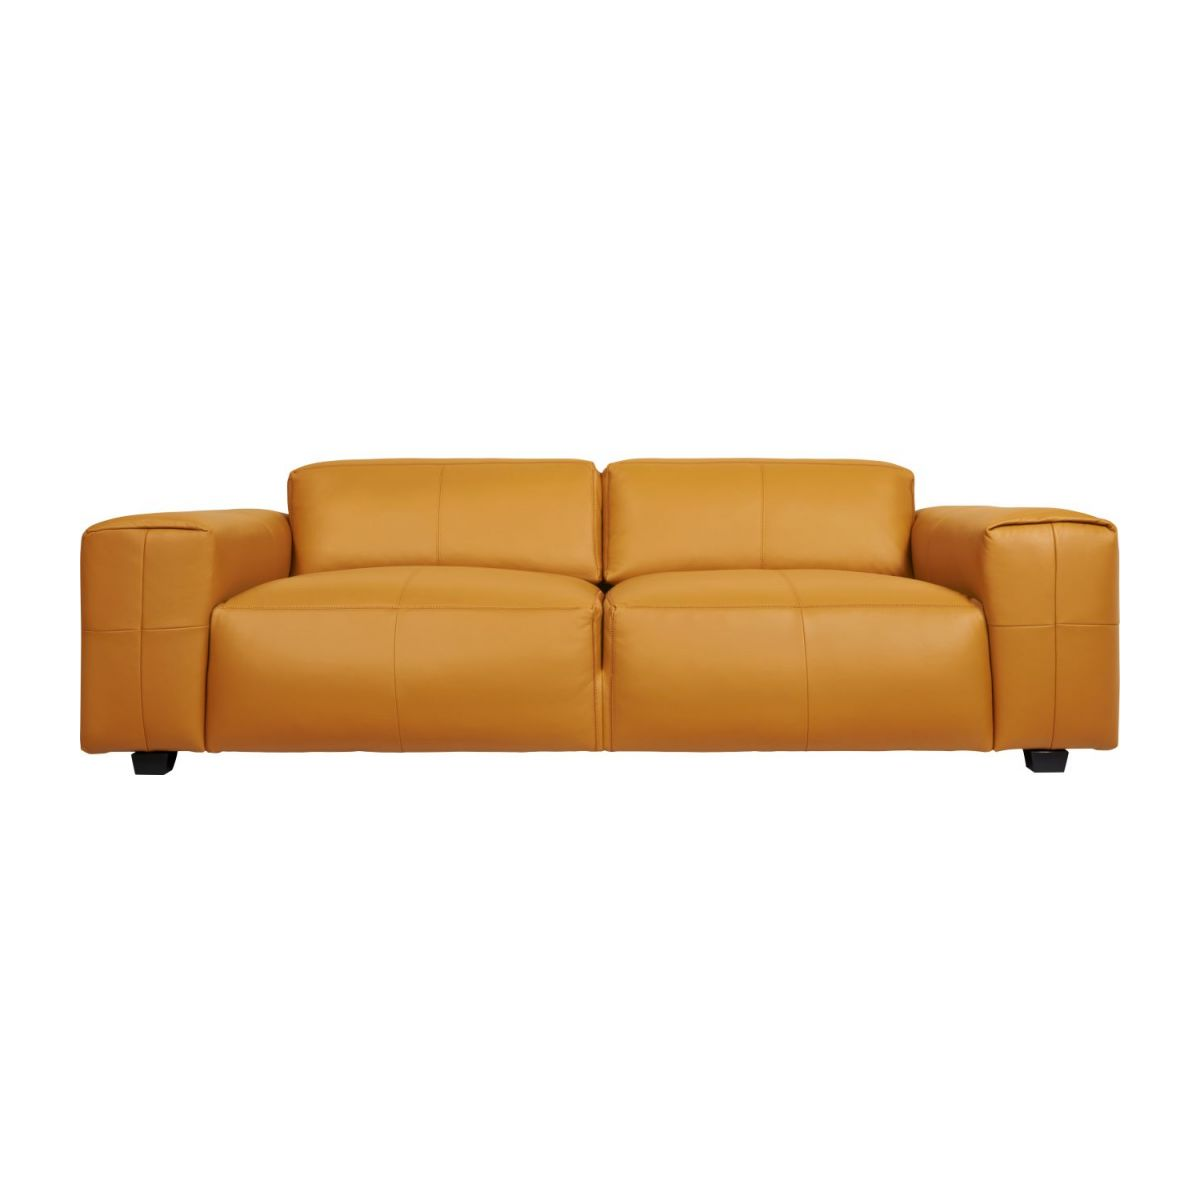 2 seater sofa in Savoy semi-aniline leather, cognac n°3